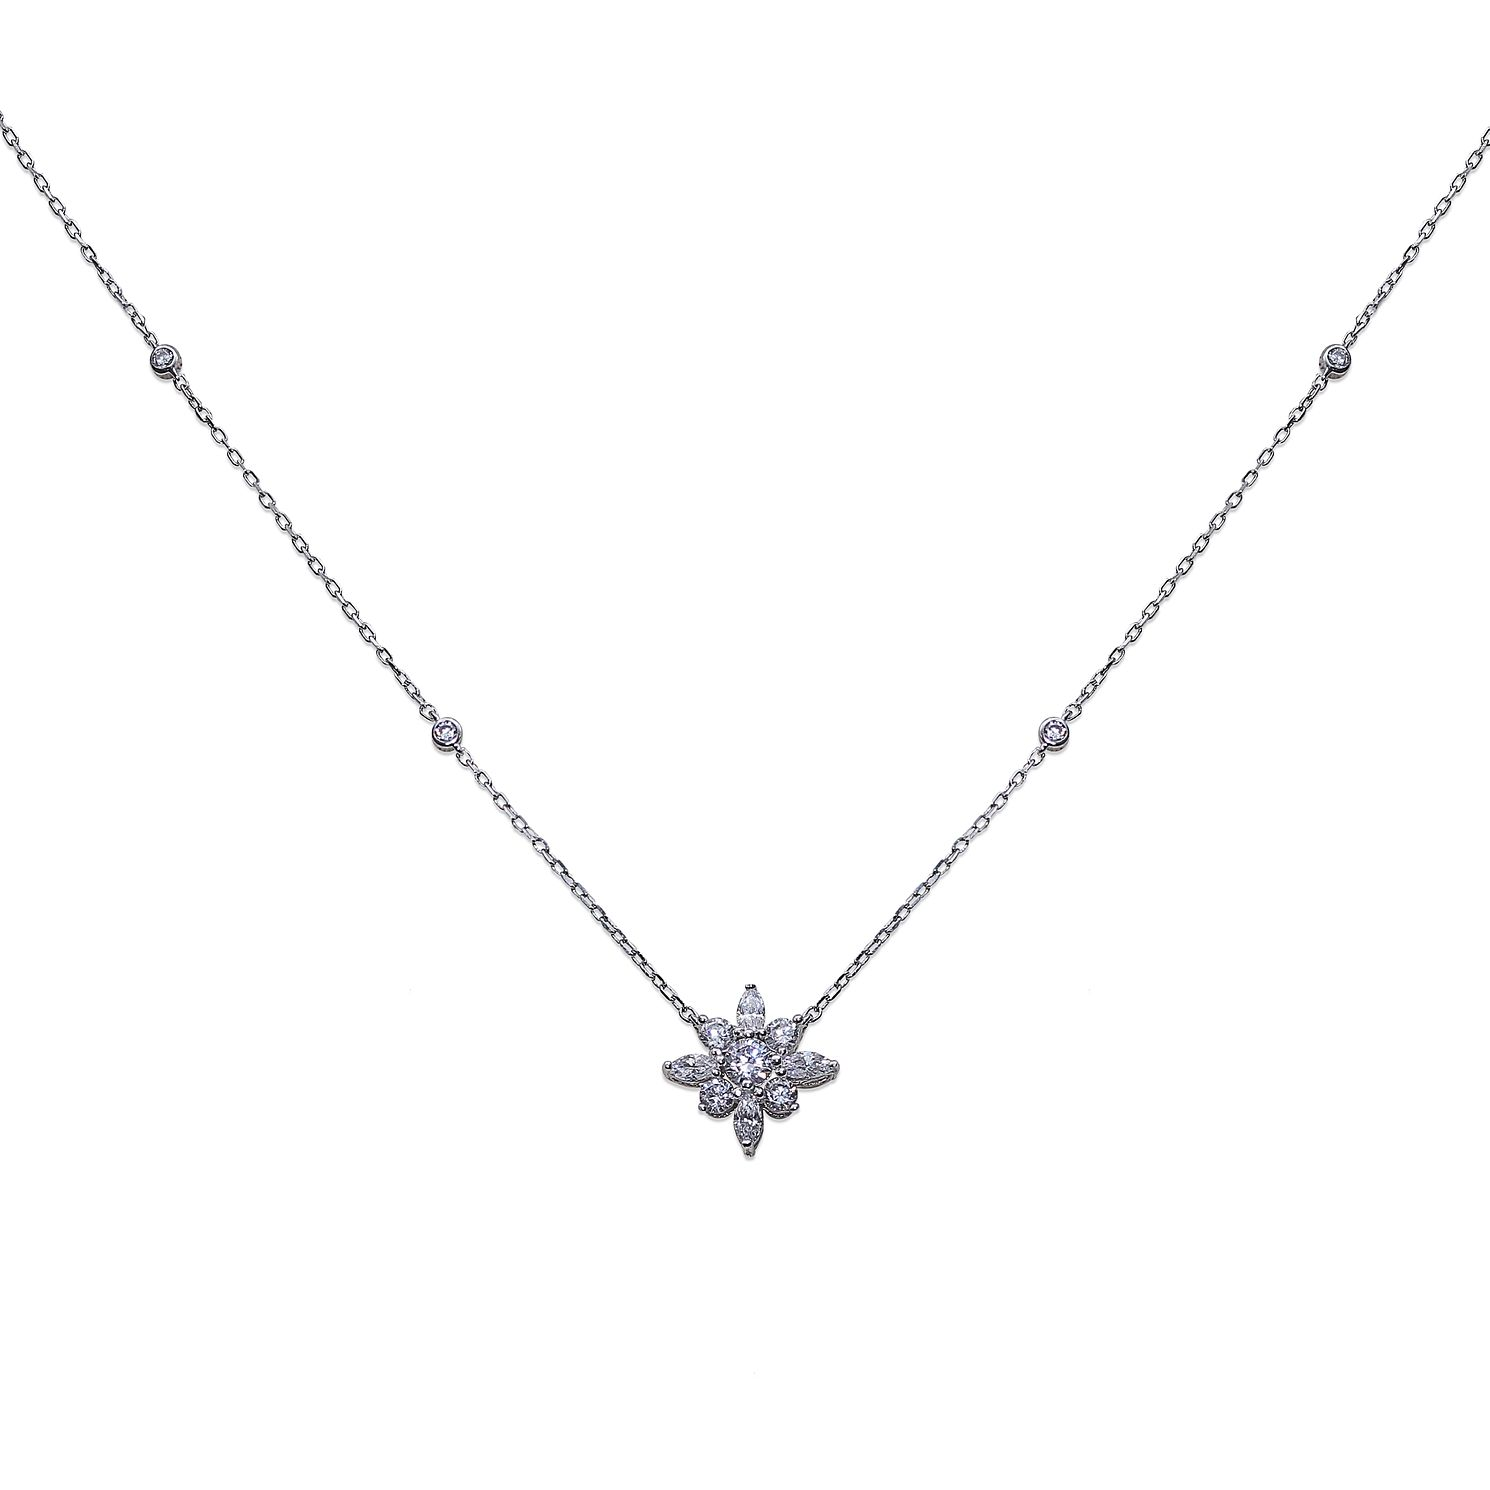 CARAT* LONDON Camelia Sterling Silver Necklace - Product number 6957692